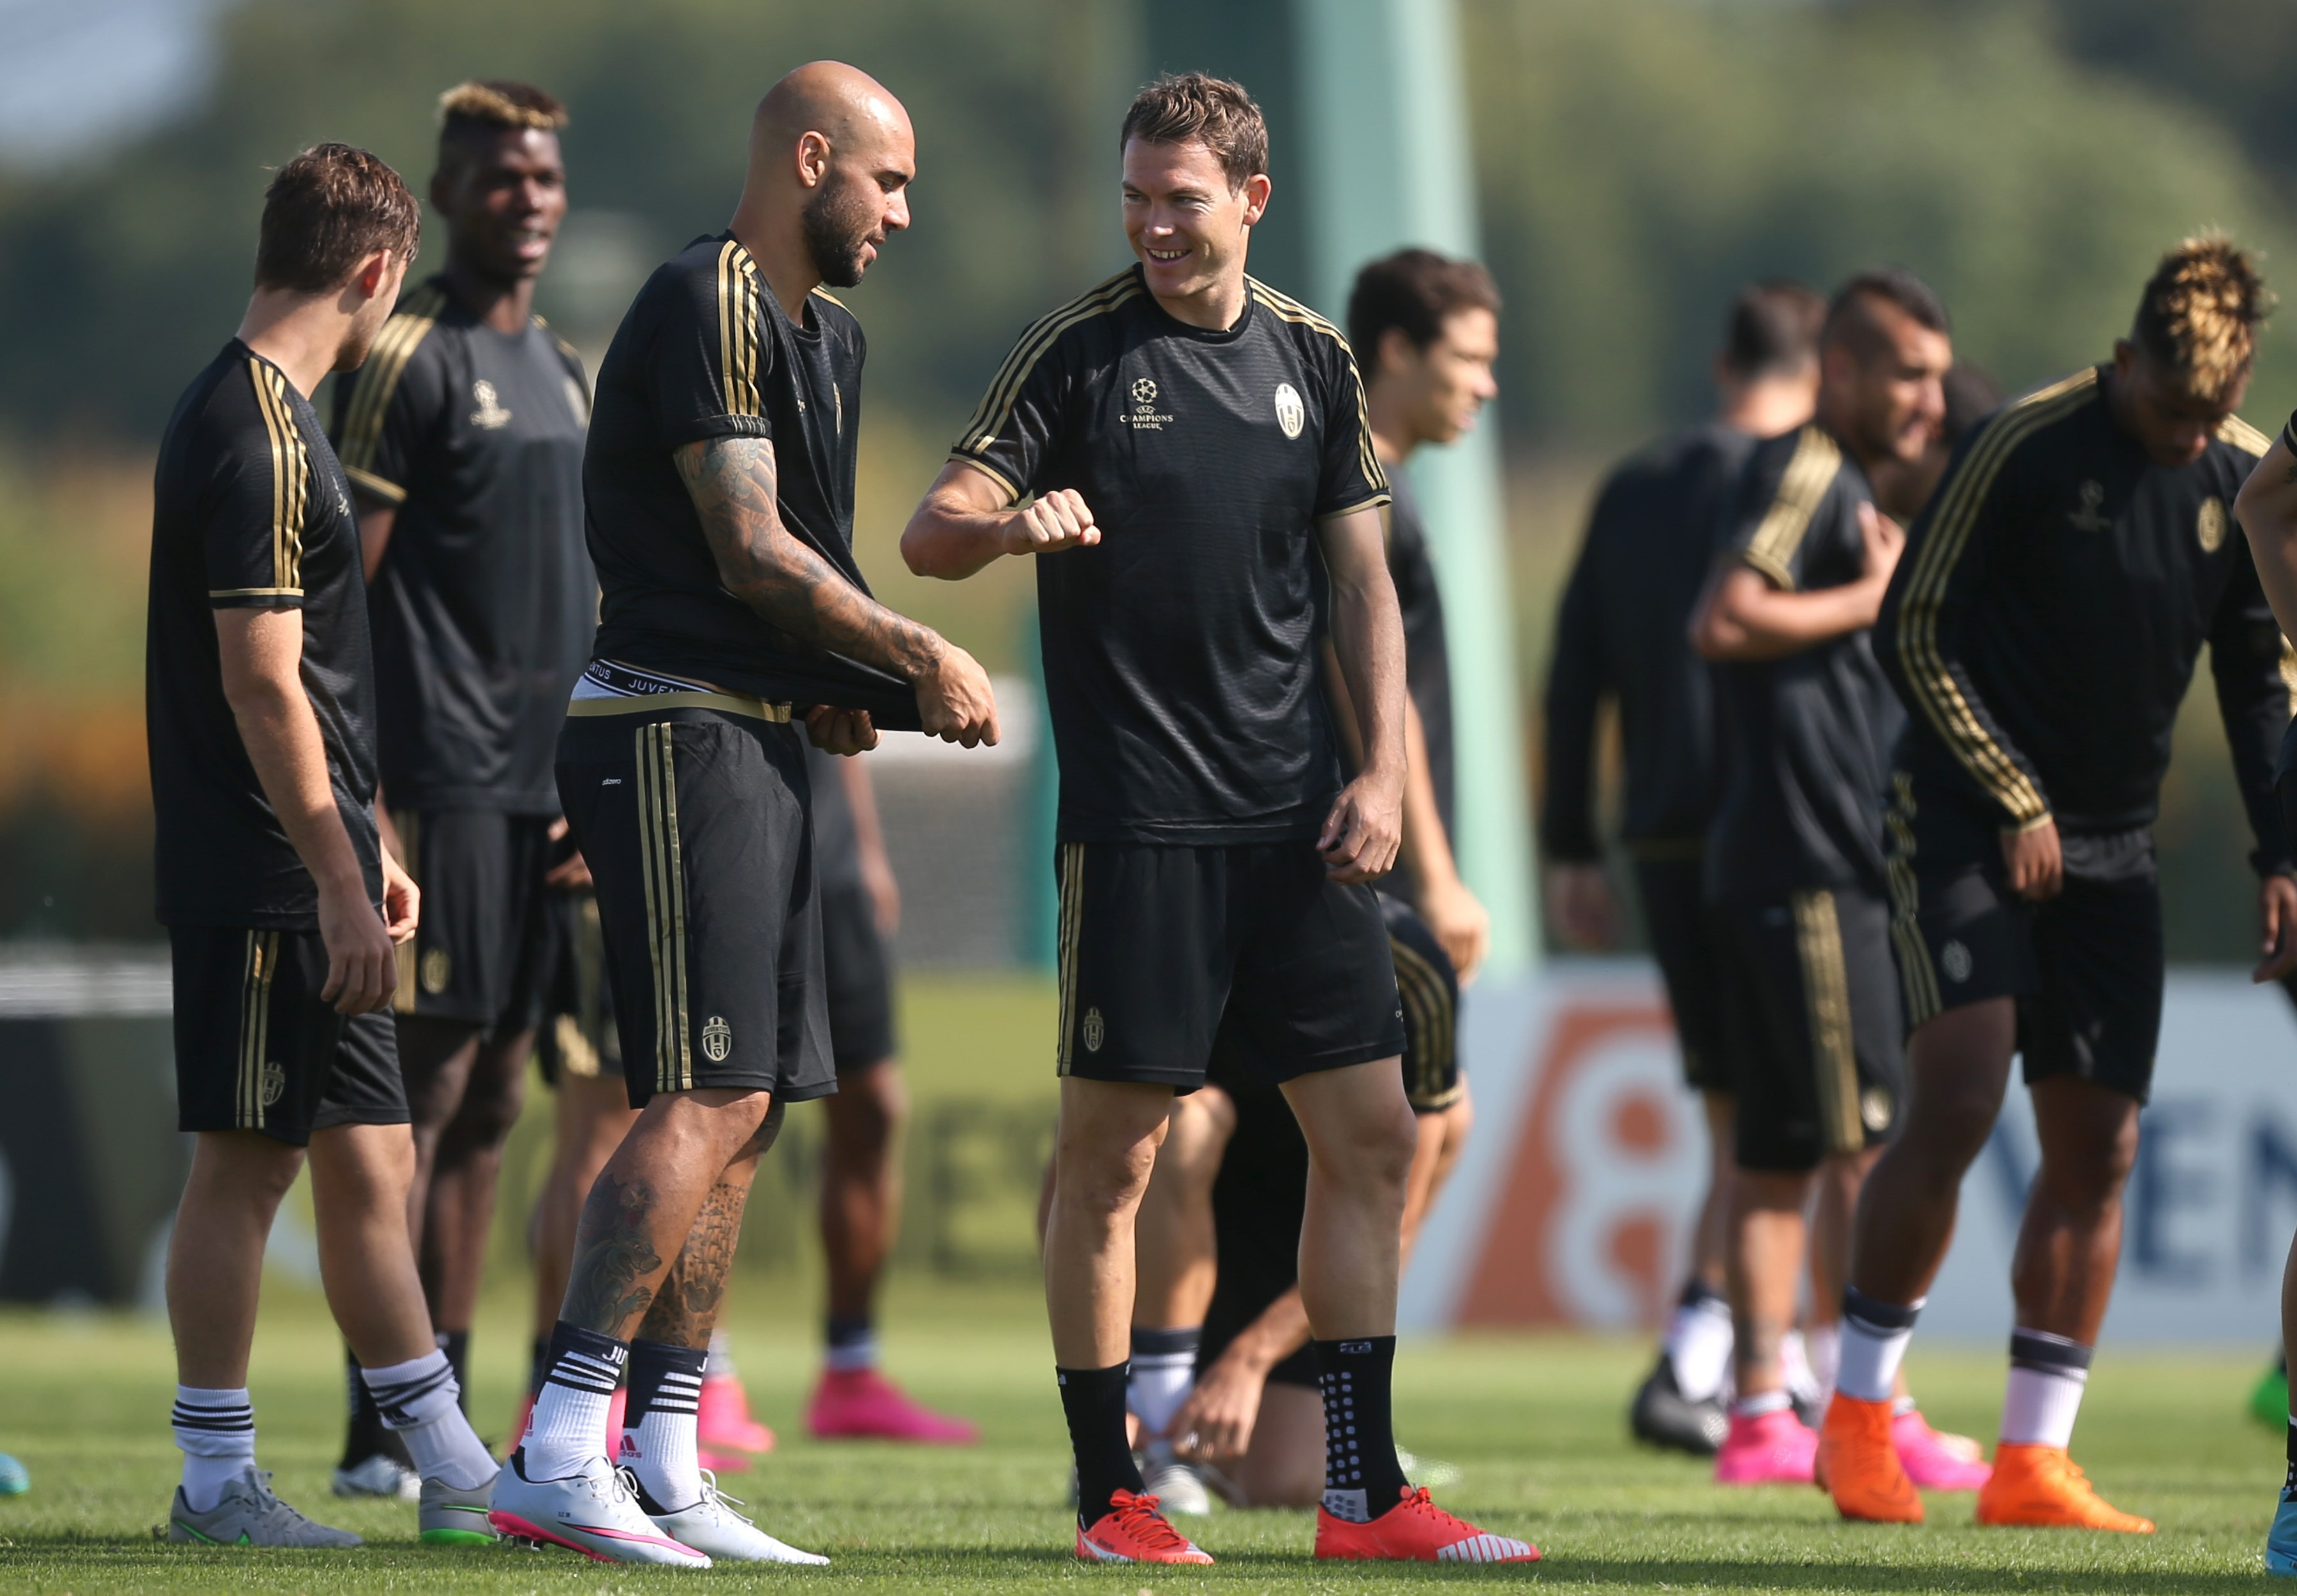 FBL-EUR-C1-JUVENTUS-TRAINING